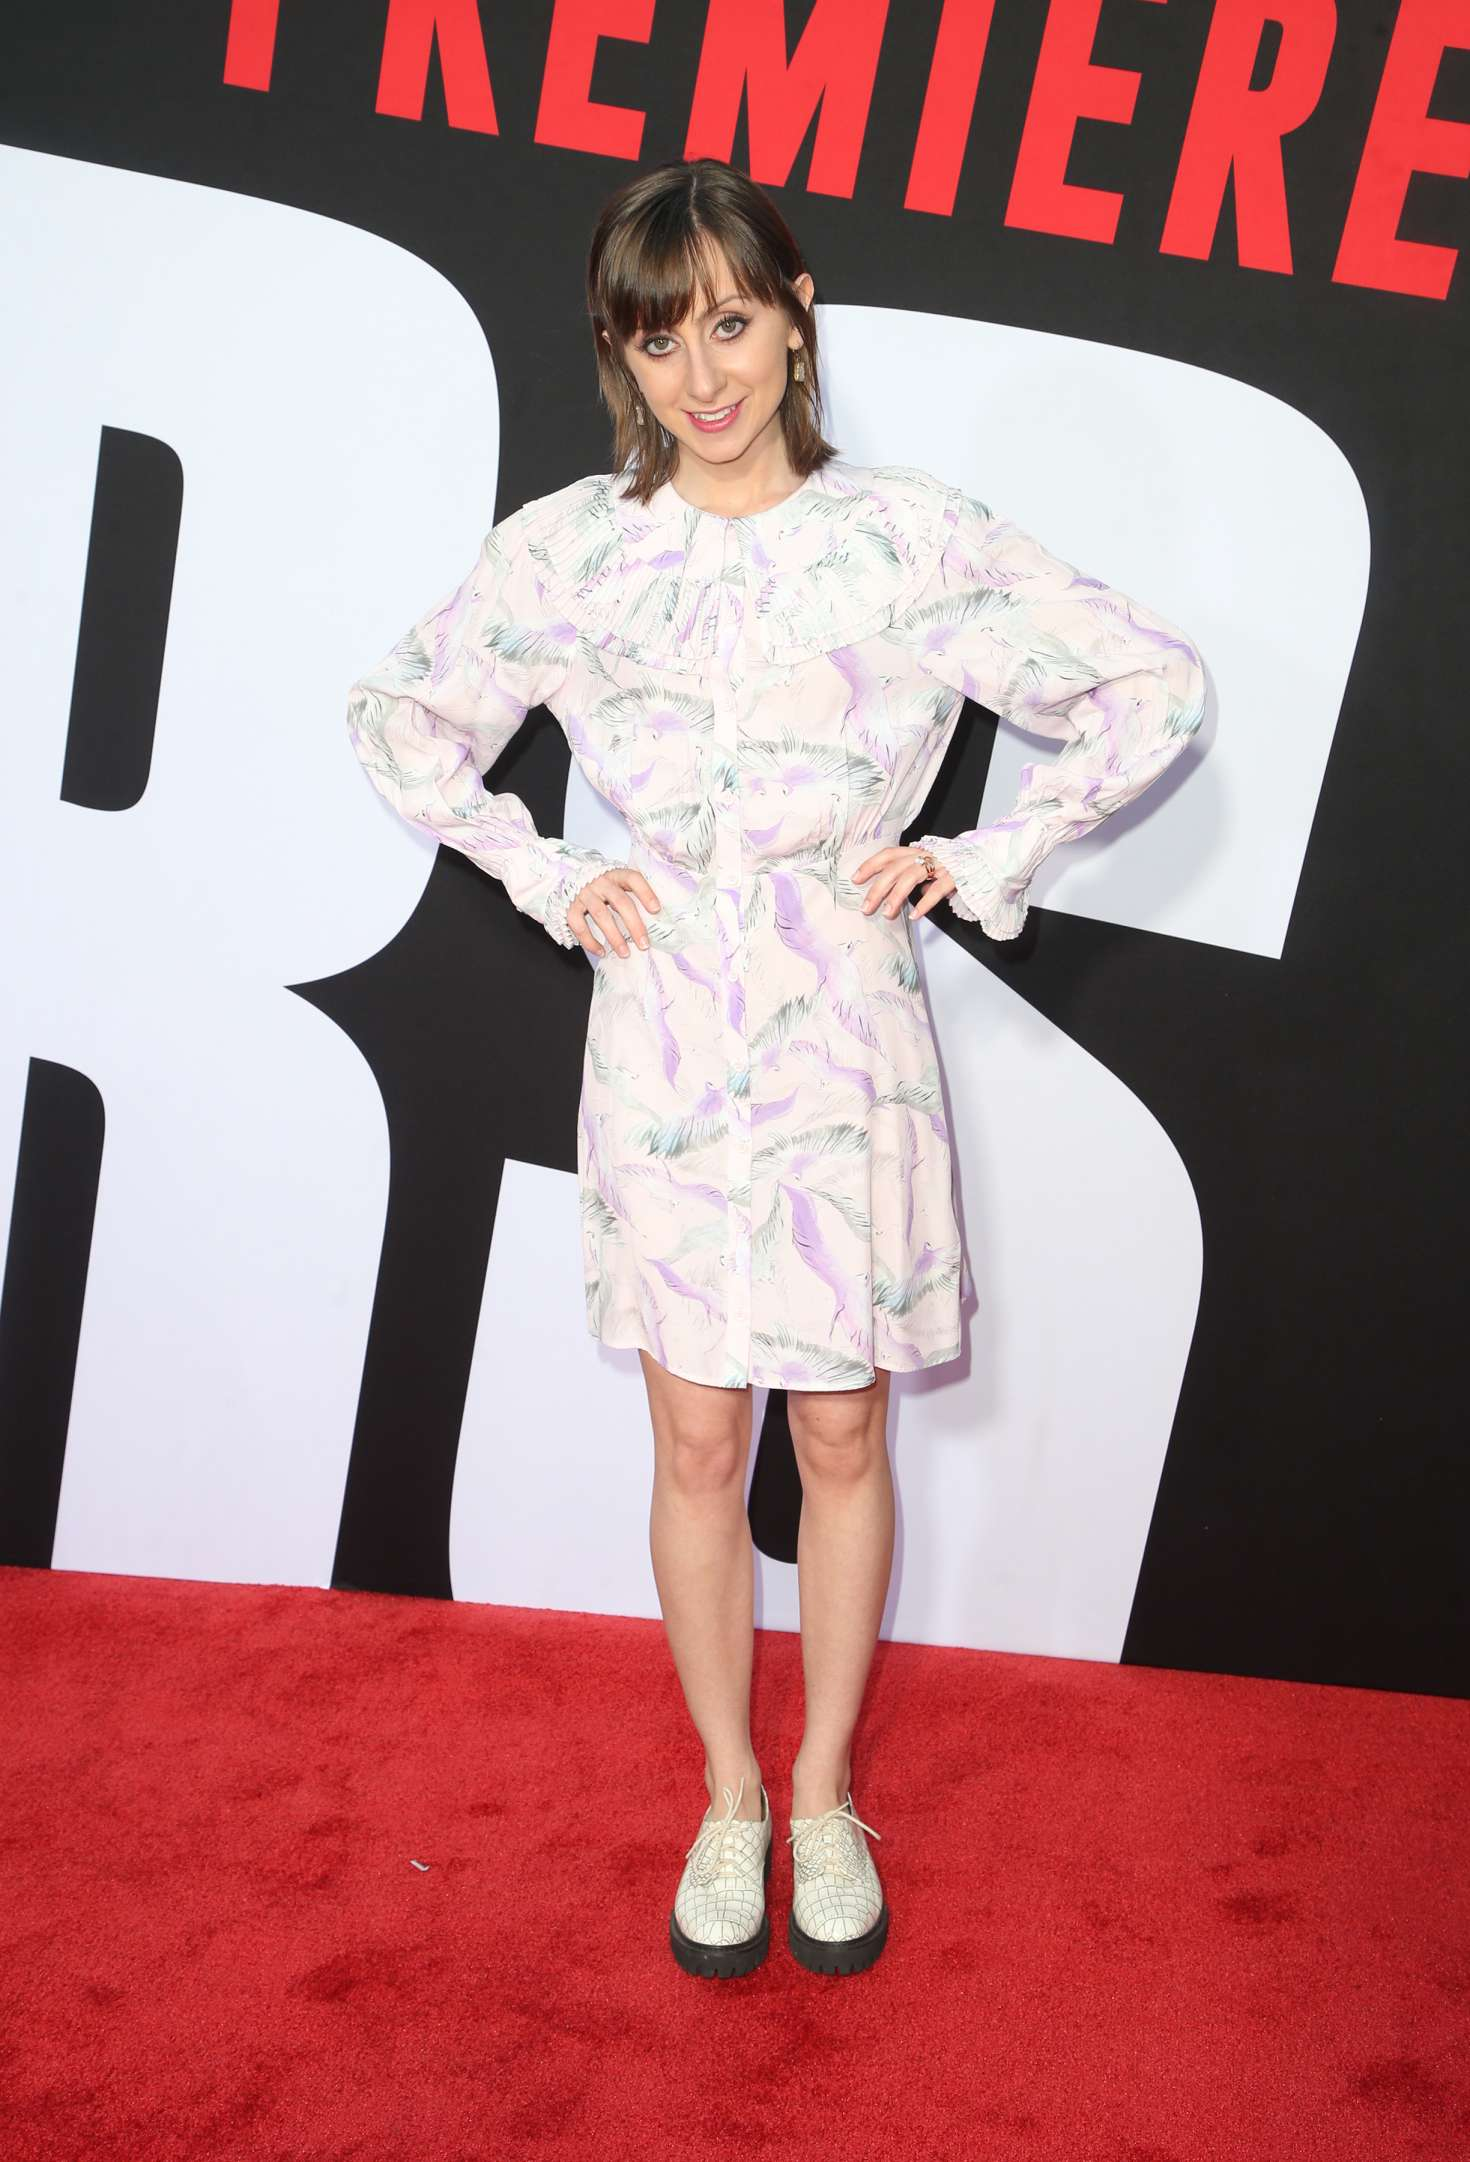 Allisyn Ashley Arm 2018 : Allisyn Ashley Arm: Blockers Premiere in Los Angeles -09